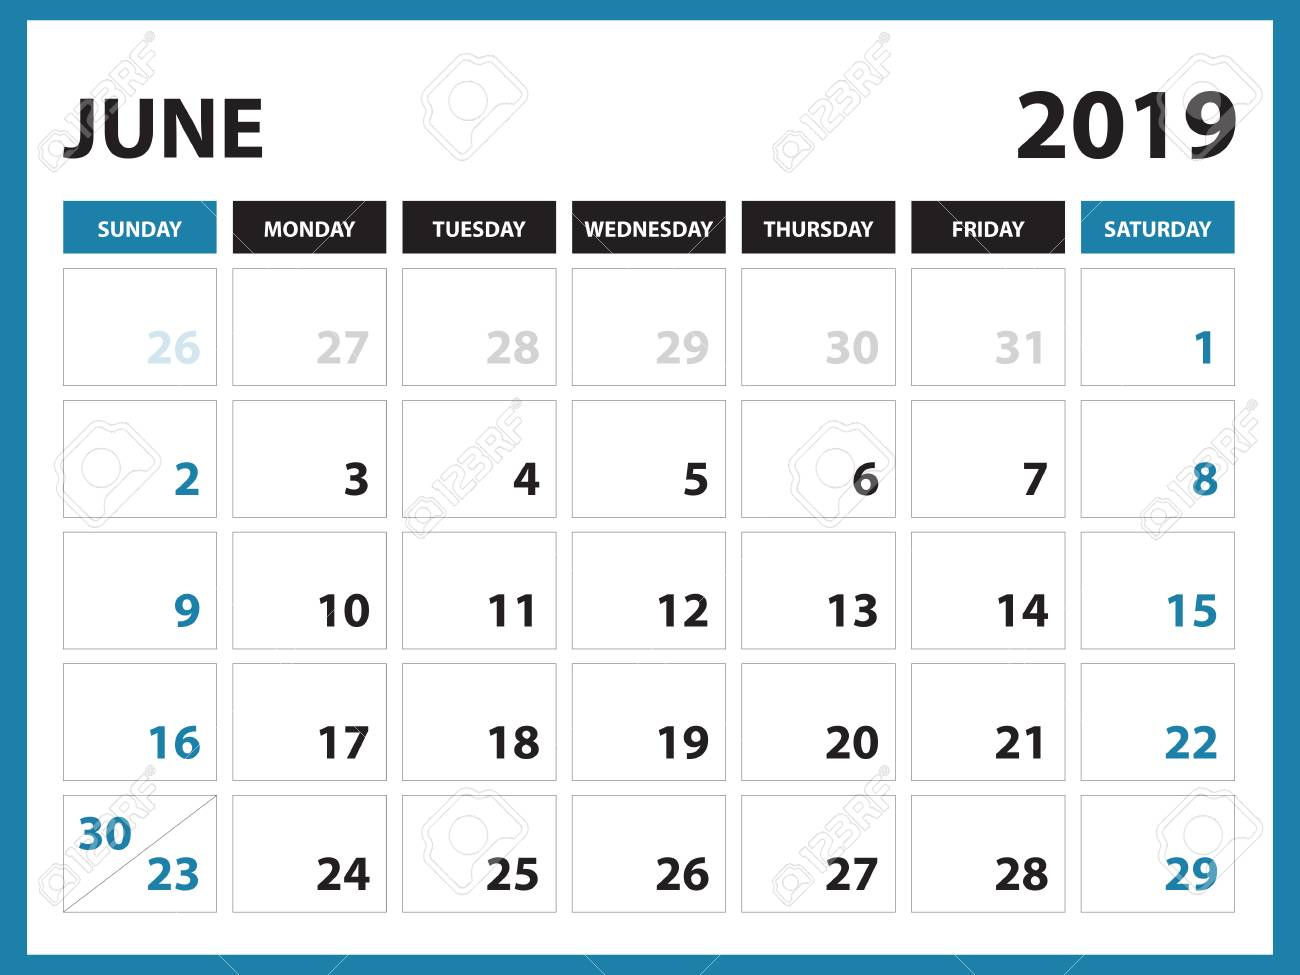 Blank June 2019 Printable Calendar.Desk Calendar For June 2019 Template Printable Calendar Planner